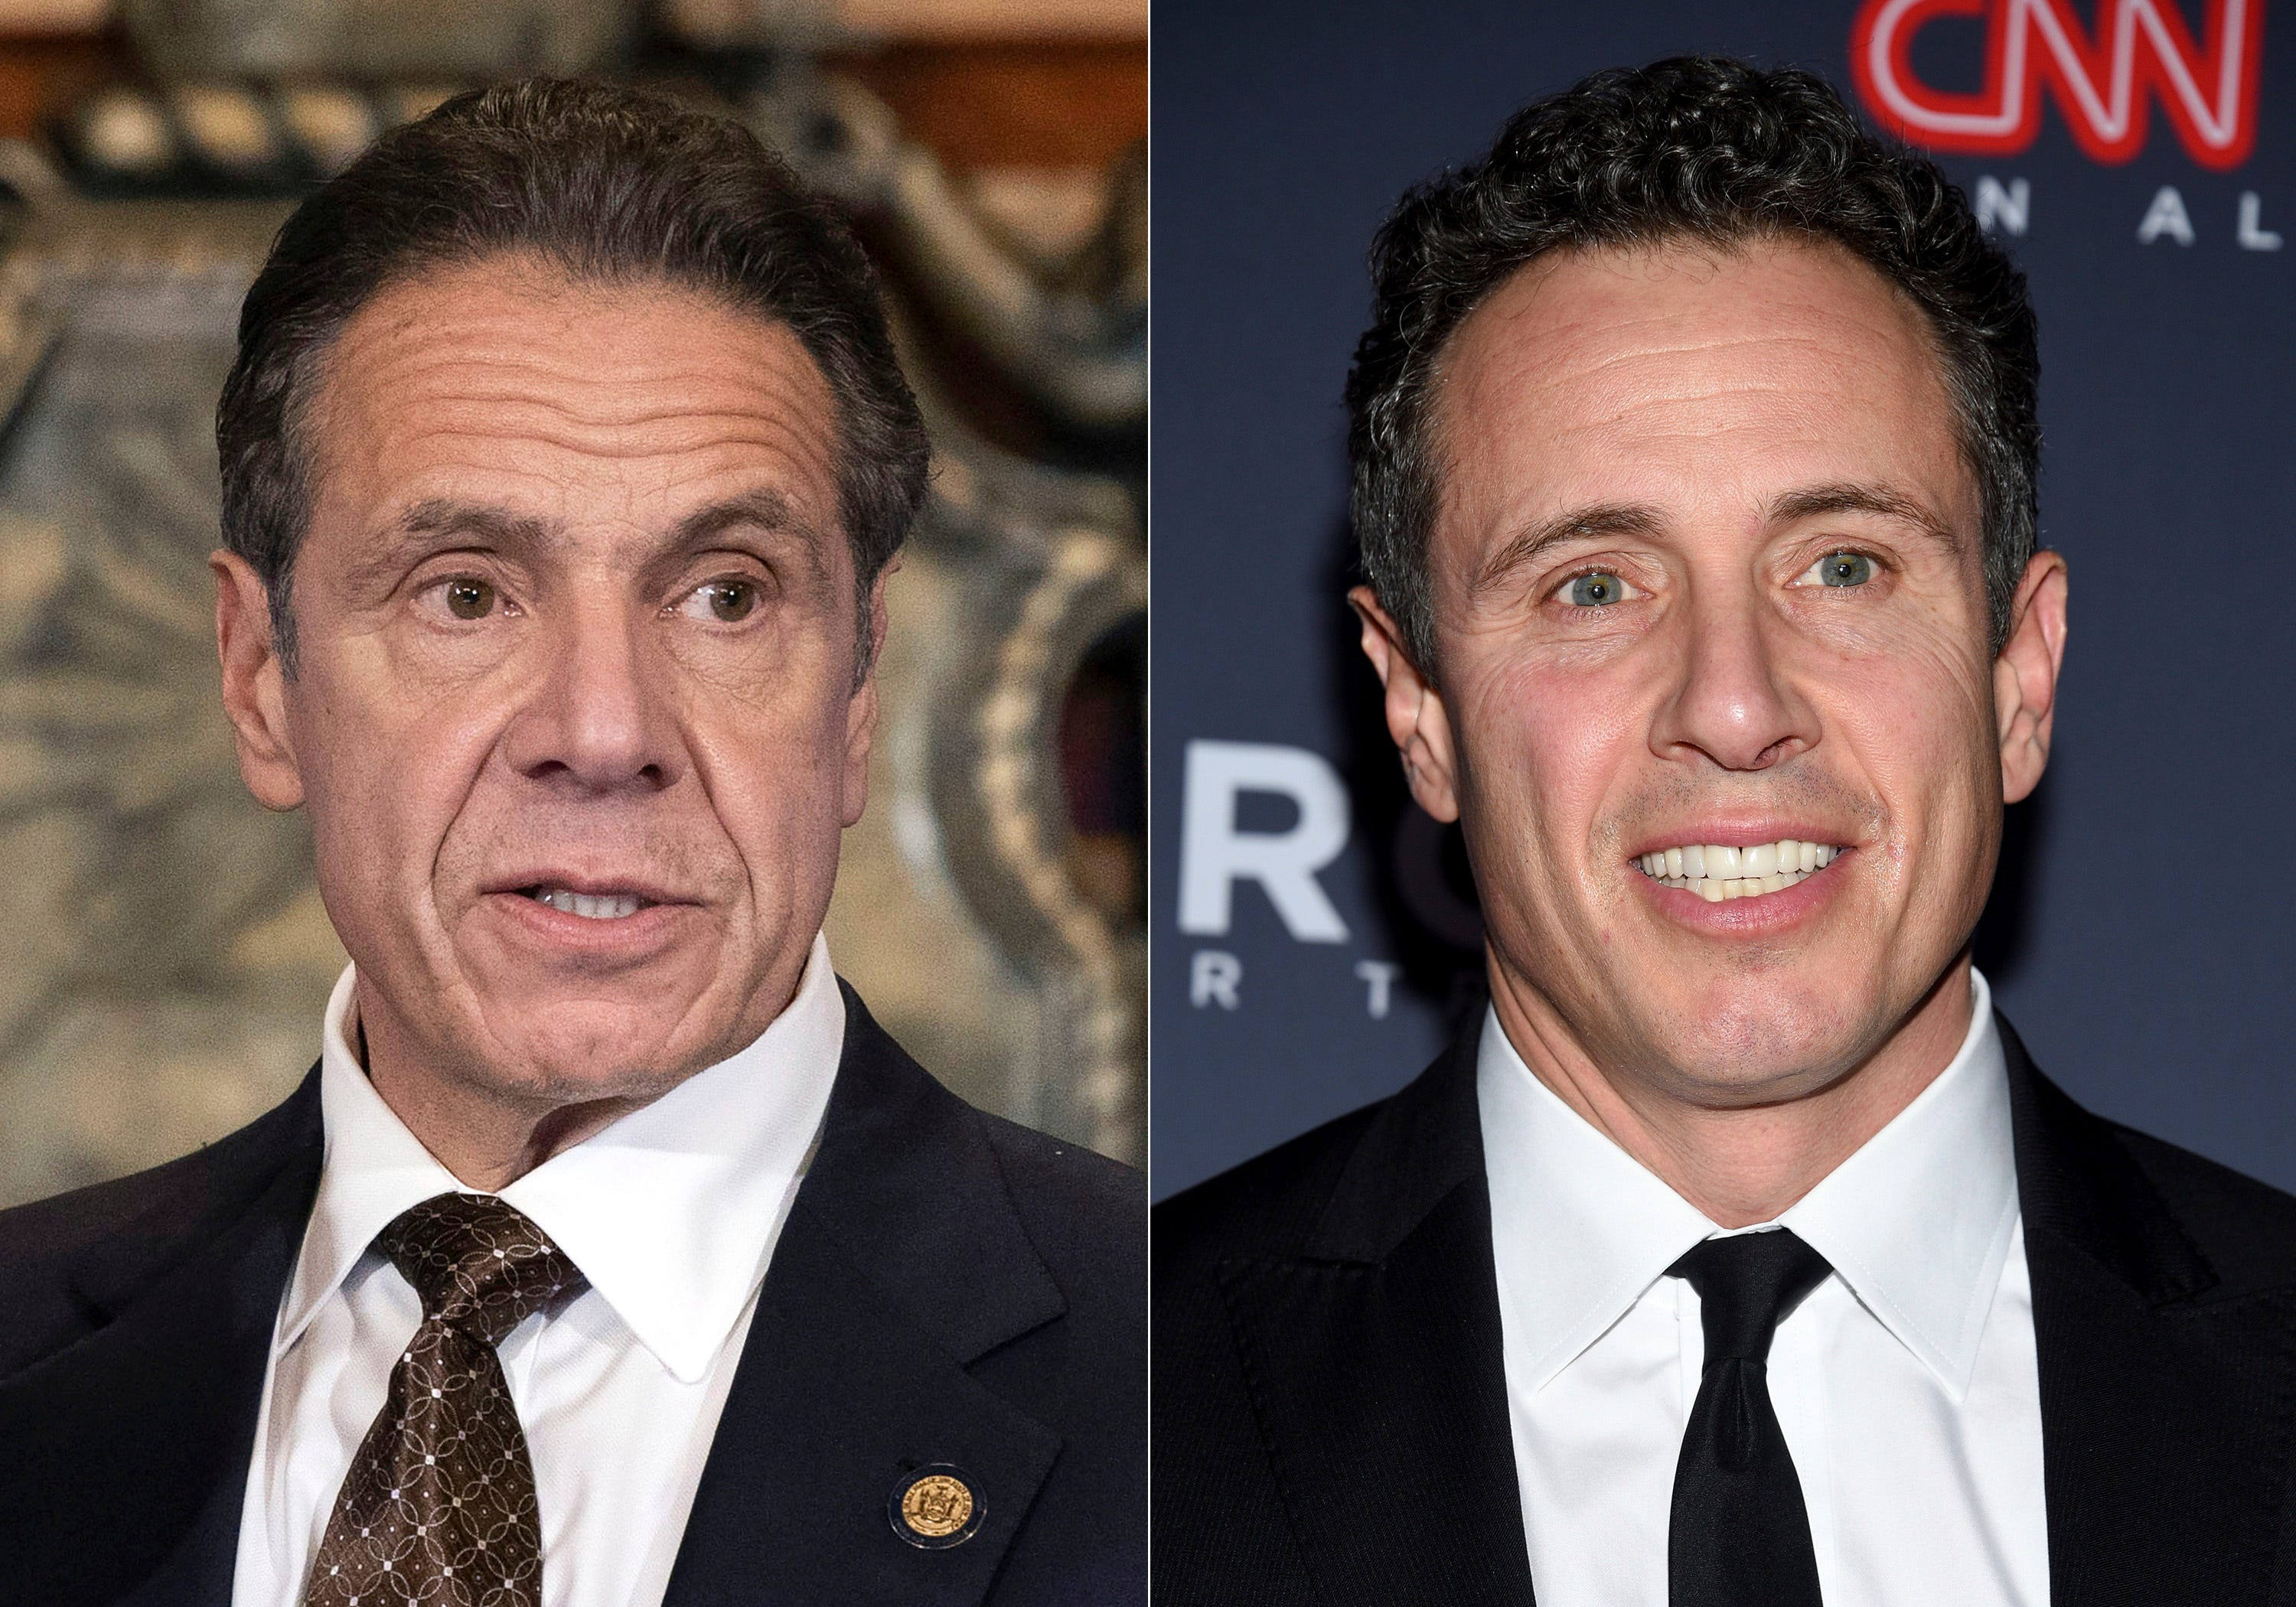 The lighter days of CNN's Cuomo Brothers show are long gone 2